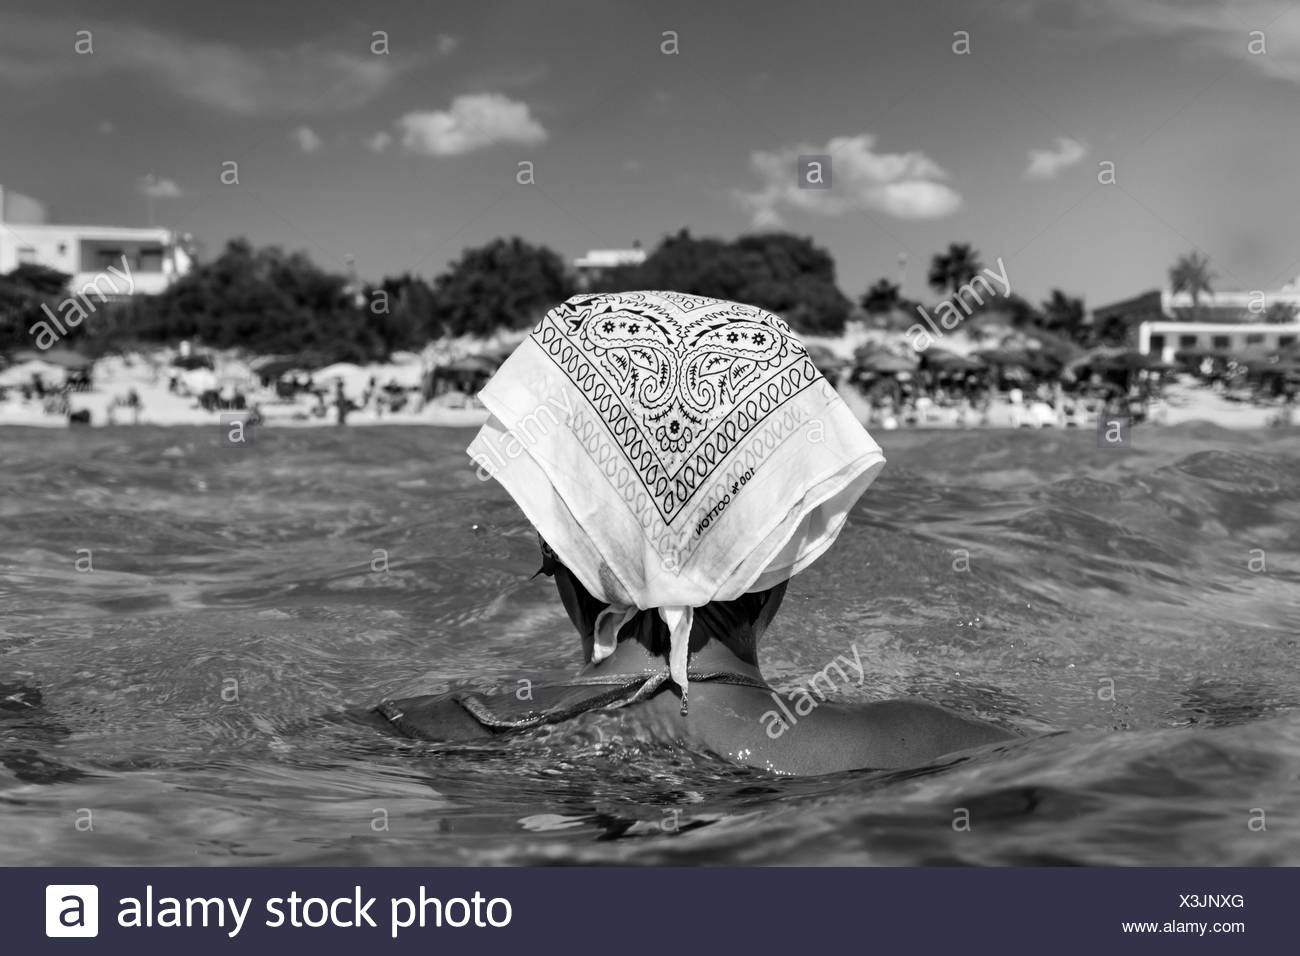 Rea View Of Woman Swimming In Lake Against Sky - Stock Image